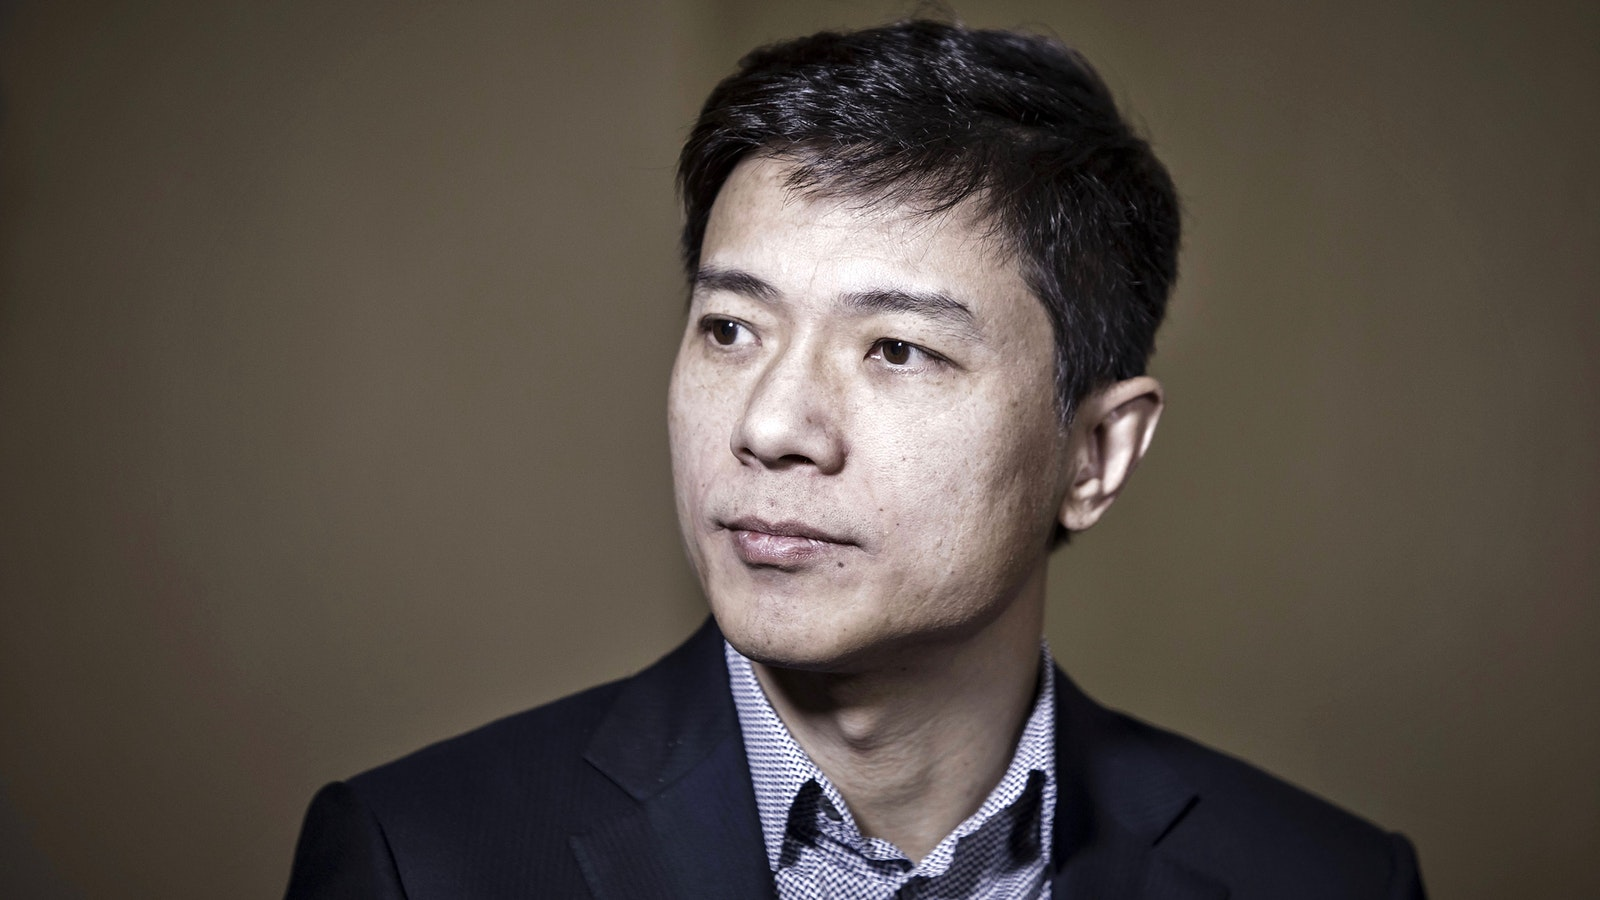 Baidu CEO Robin Li. Photo by Bloomberg.